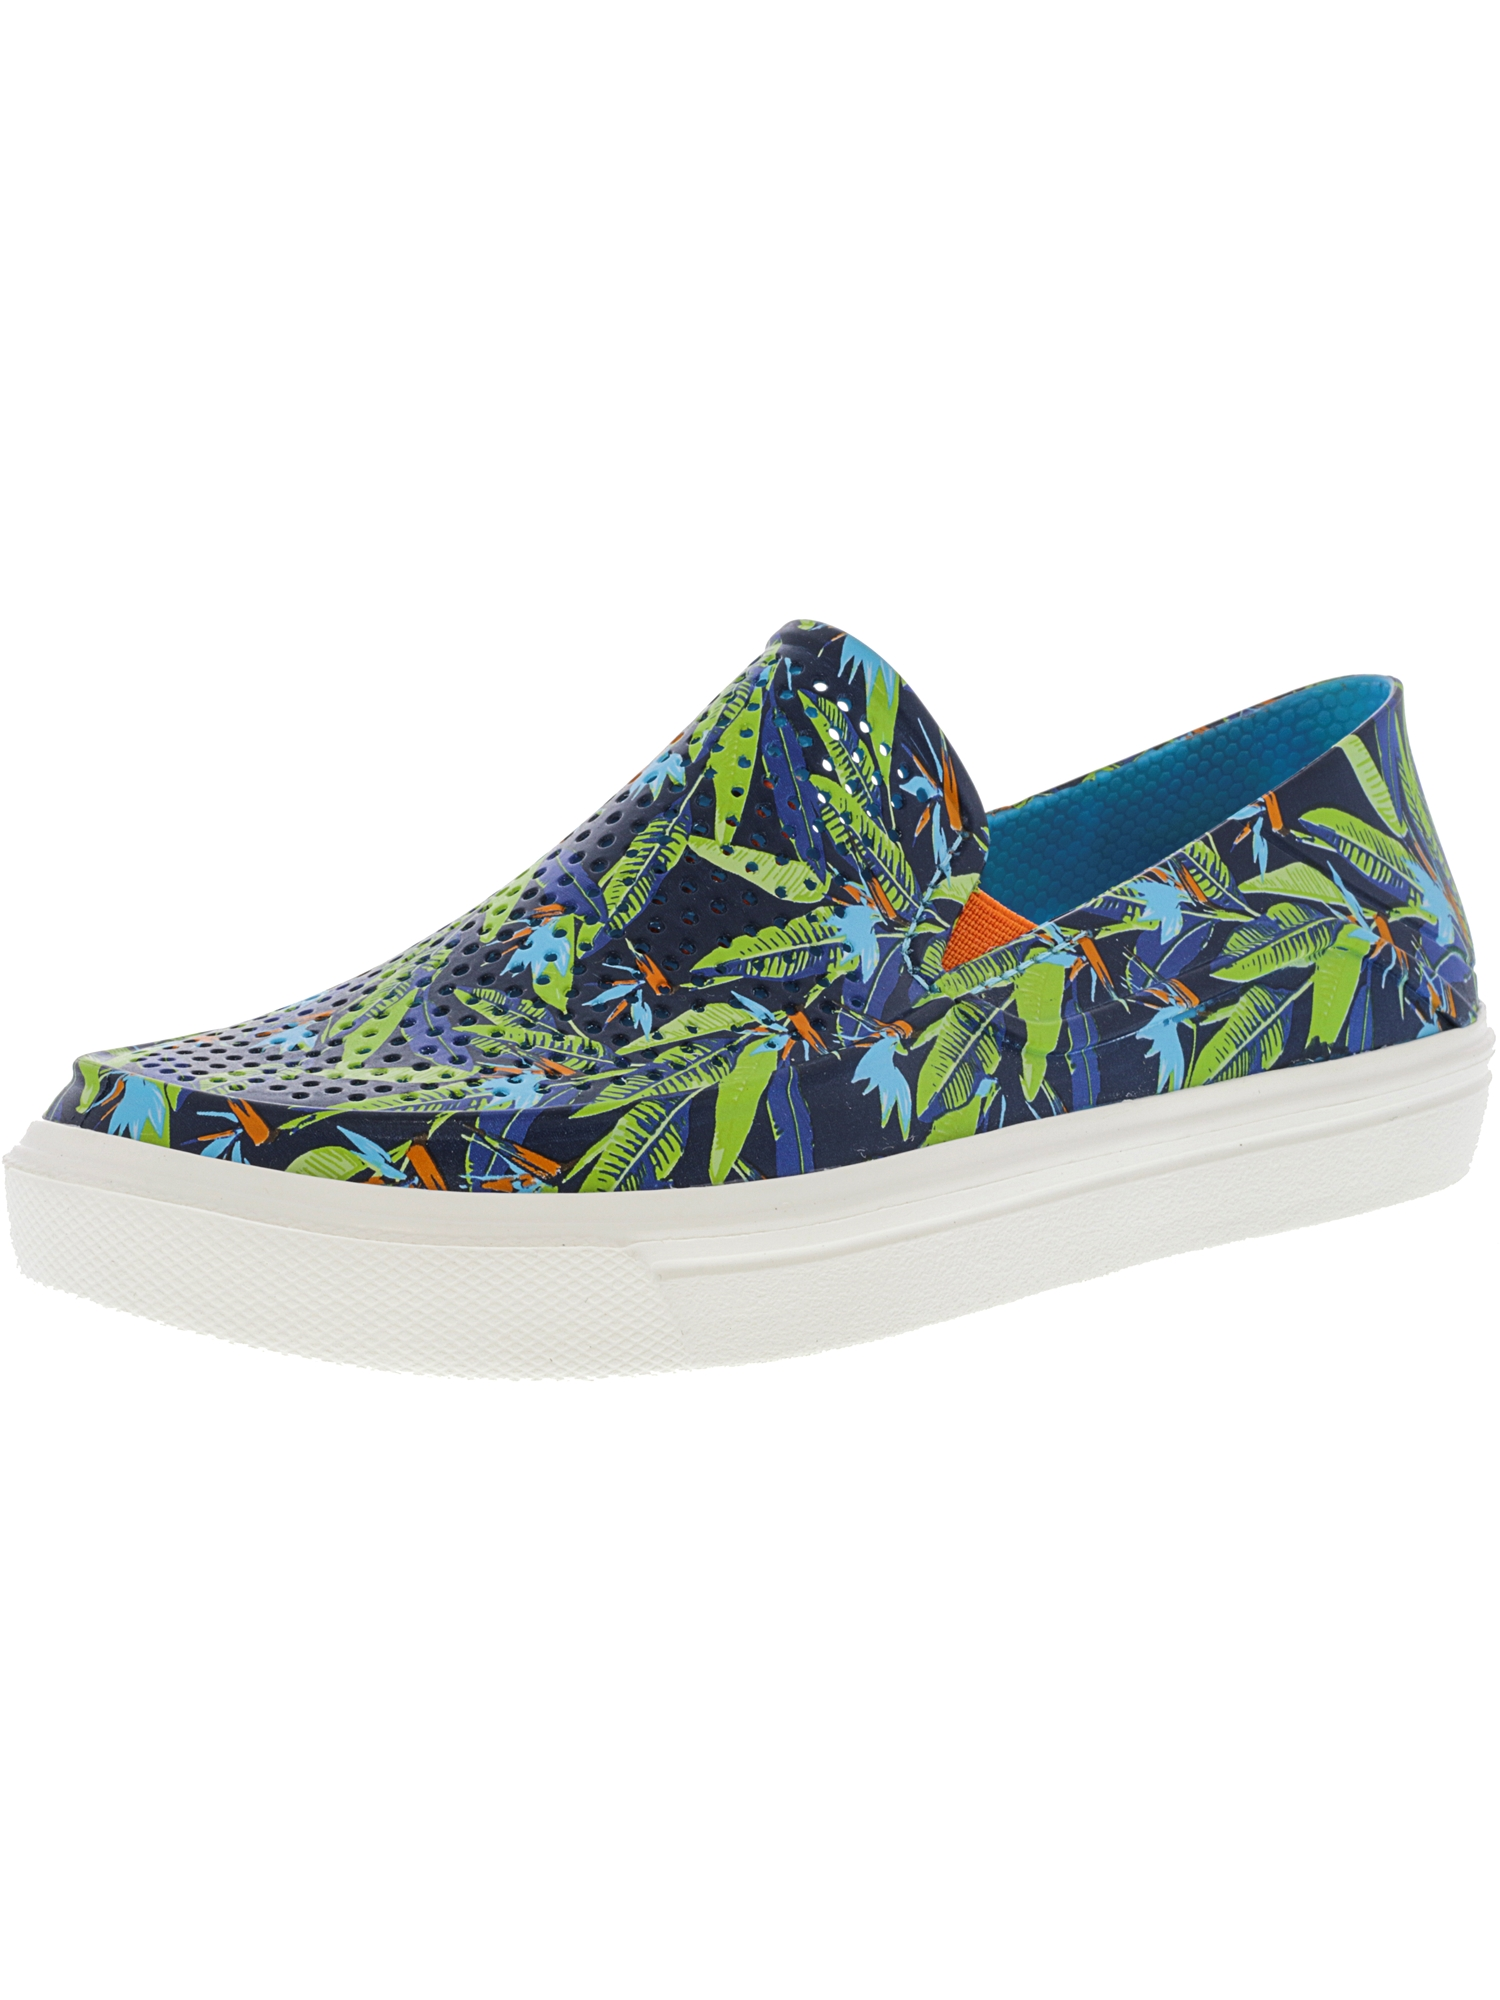 Crocs Citilane Roka Graphic Multi-Color Blue Ankle-High Flat Shoe 2M by Crocs